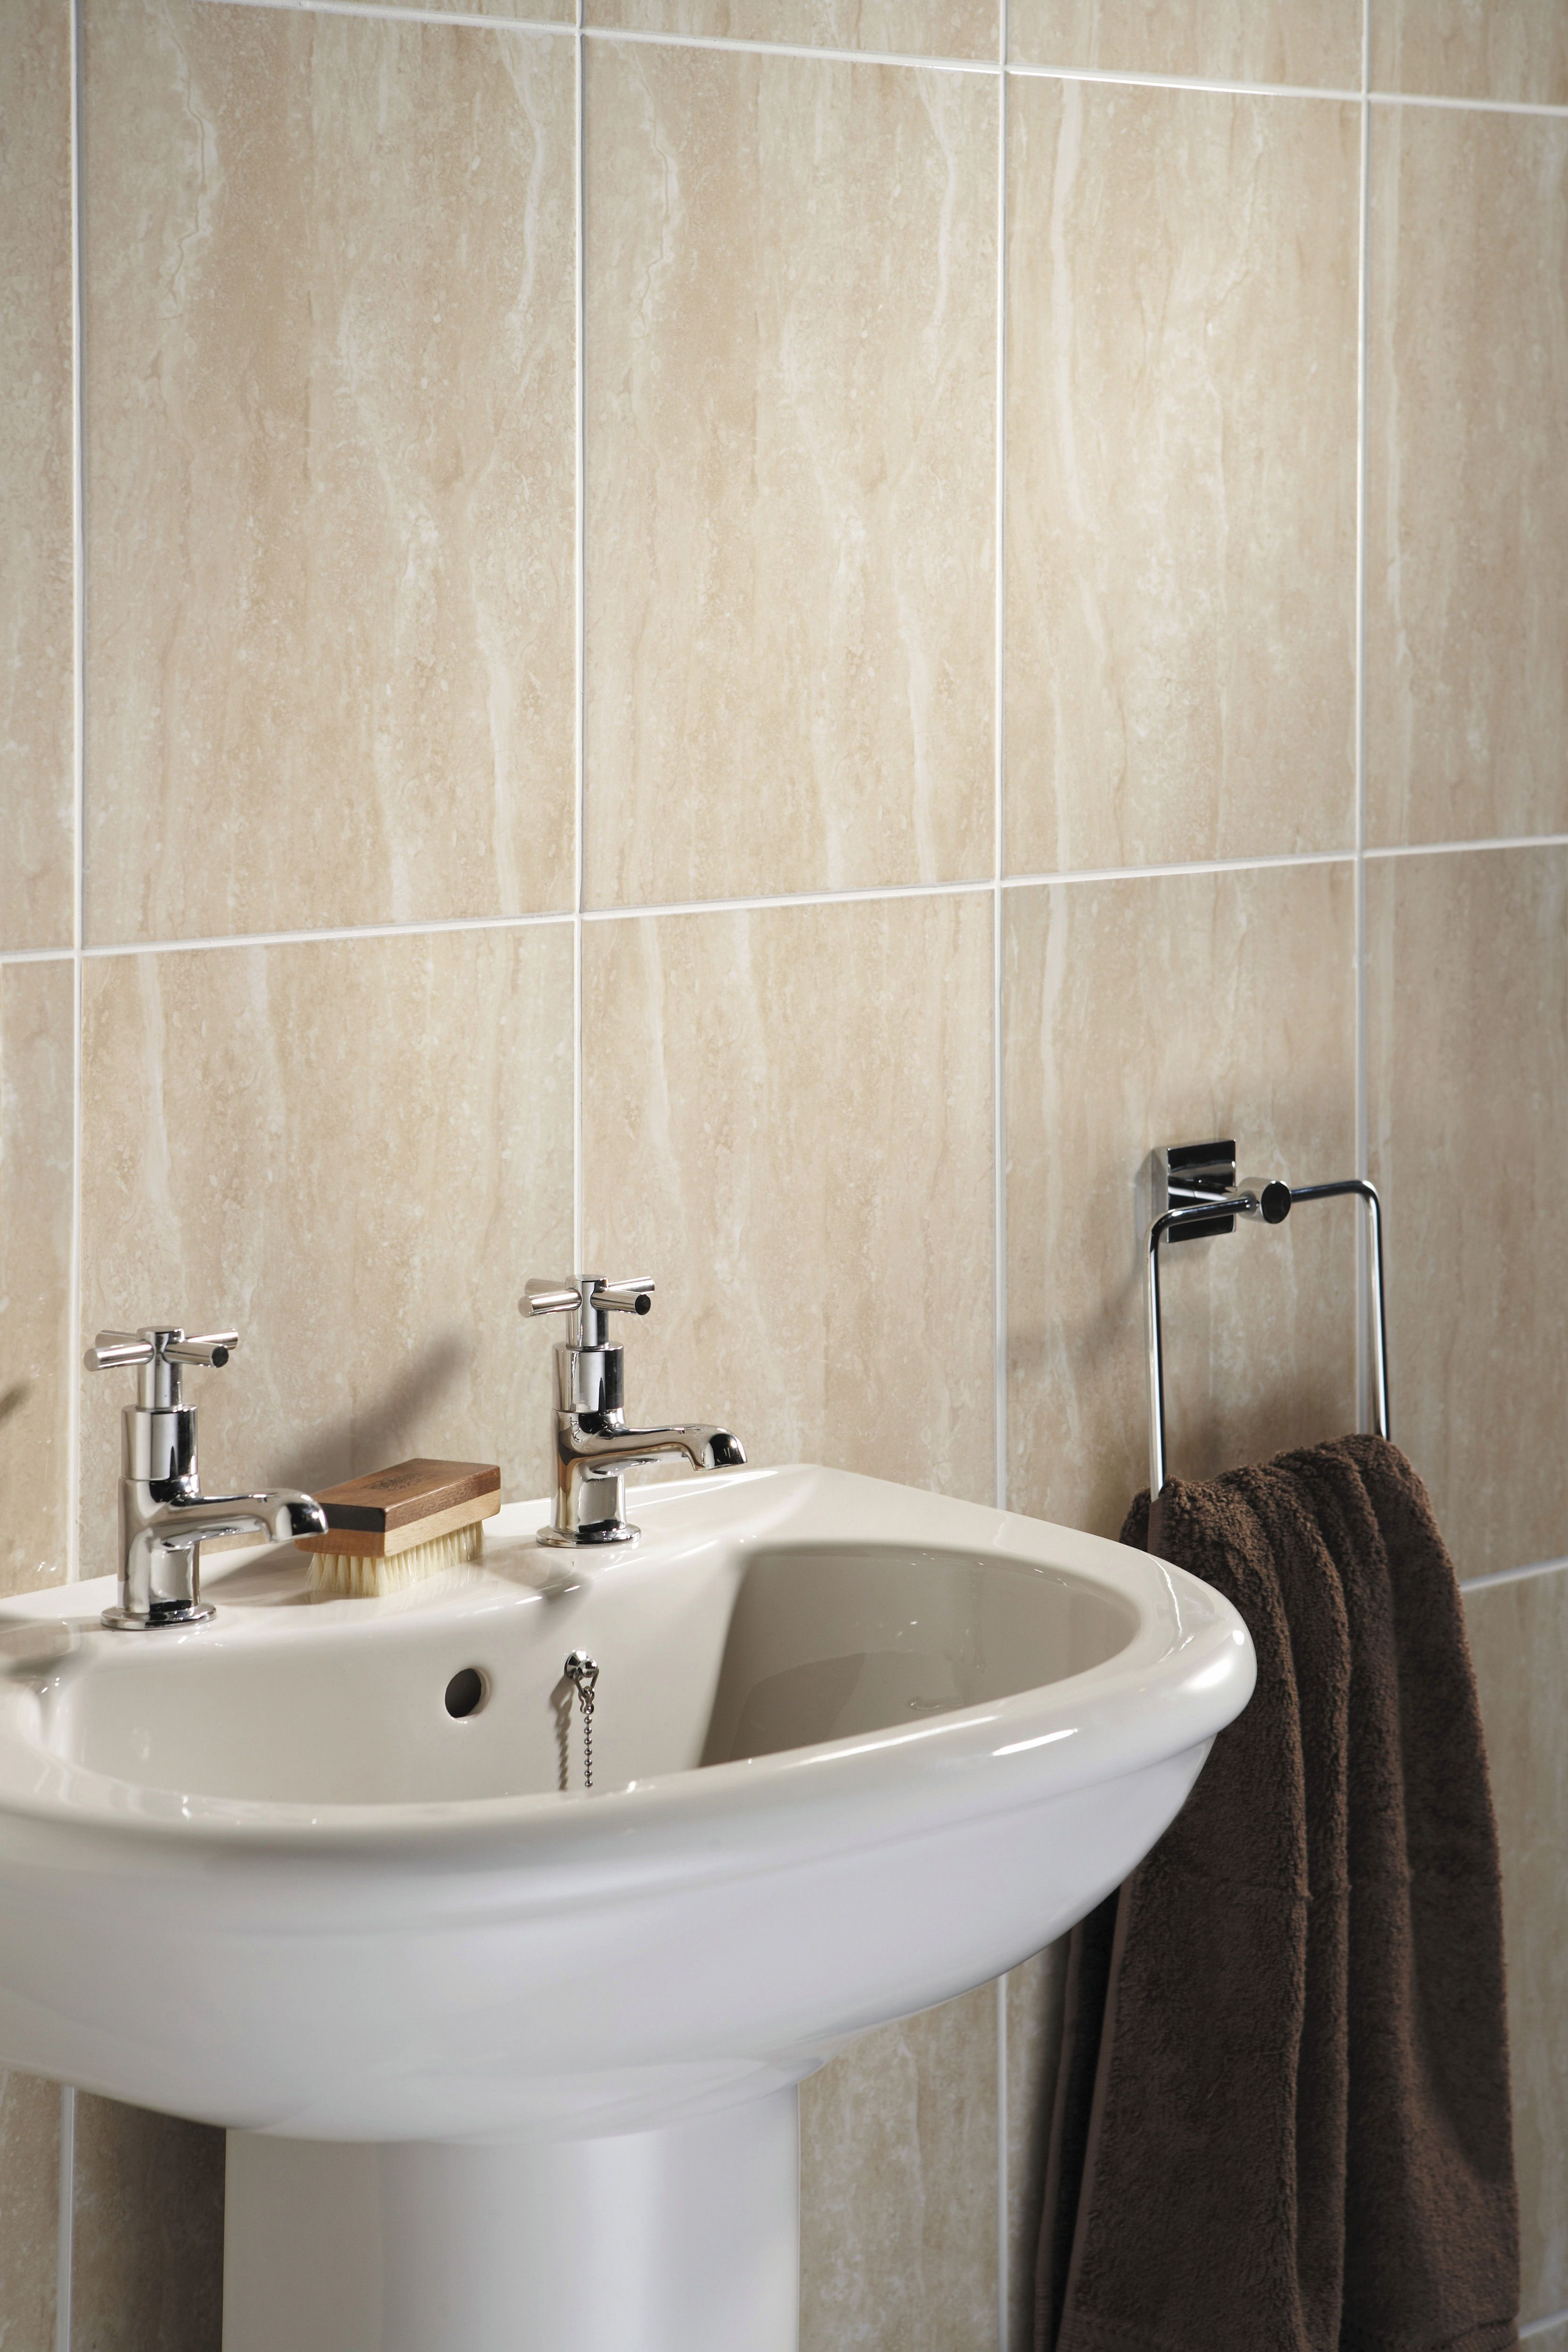 of awesome connected ideas stainless inspiring small wall steel on latrine by apartment with tub you travertine bathroom bathtub shower tile and detail